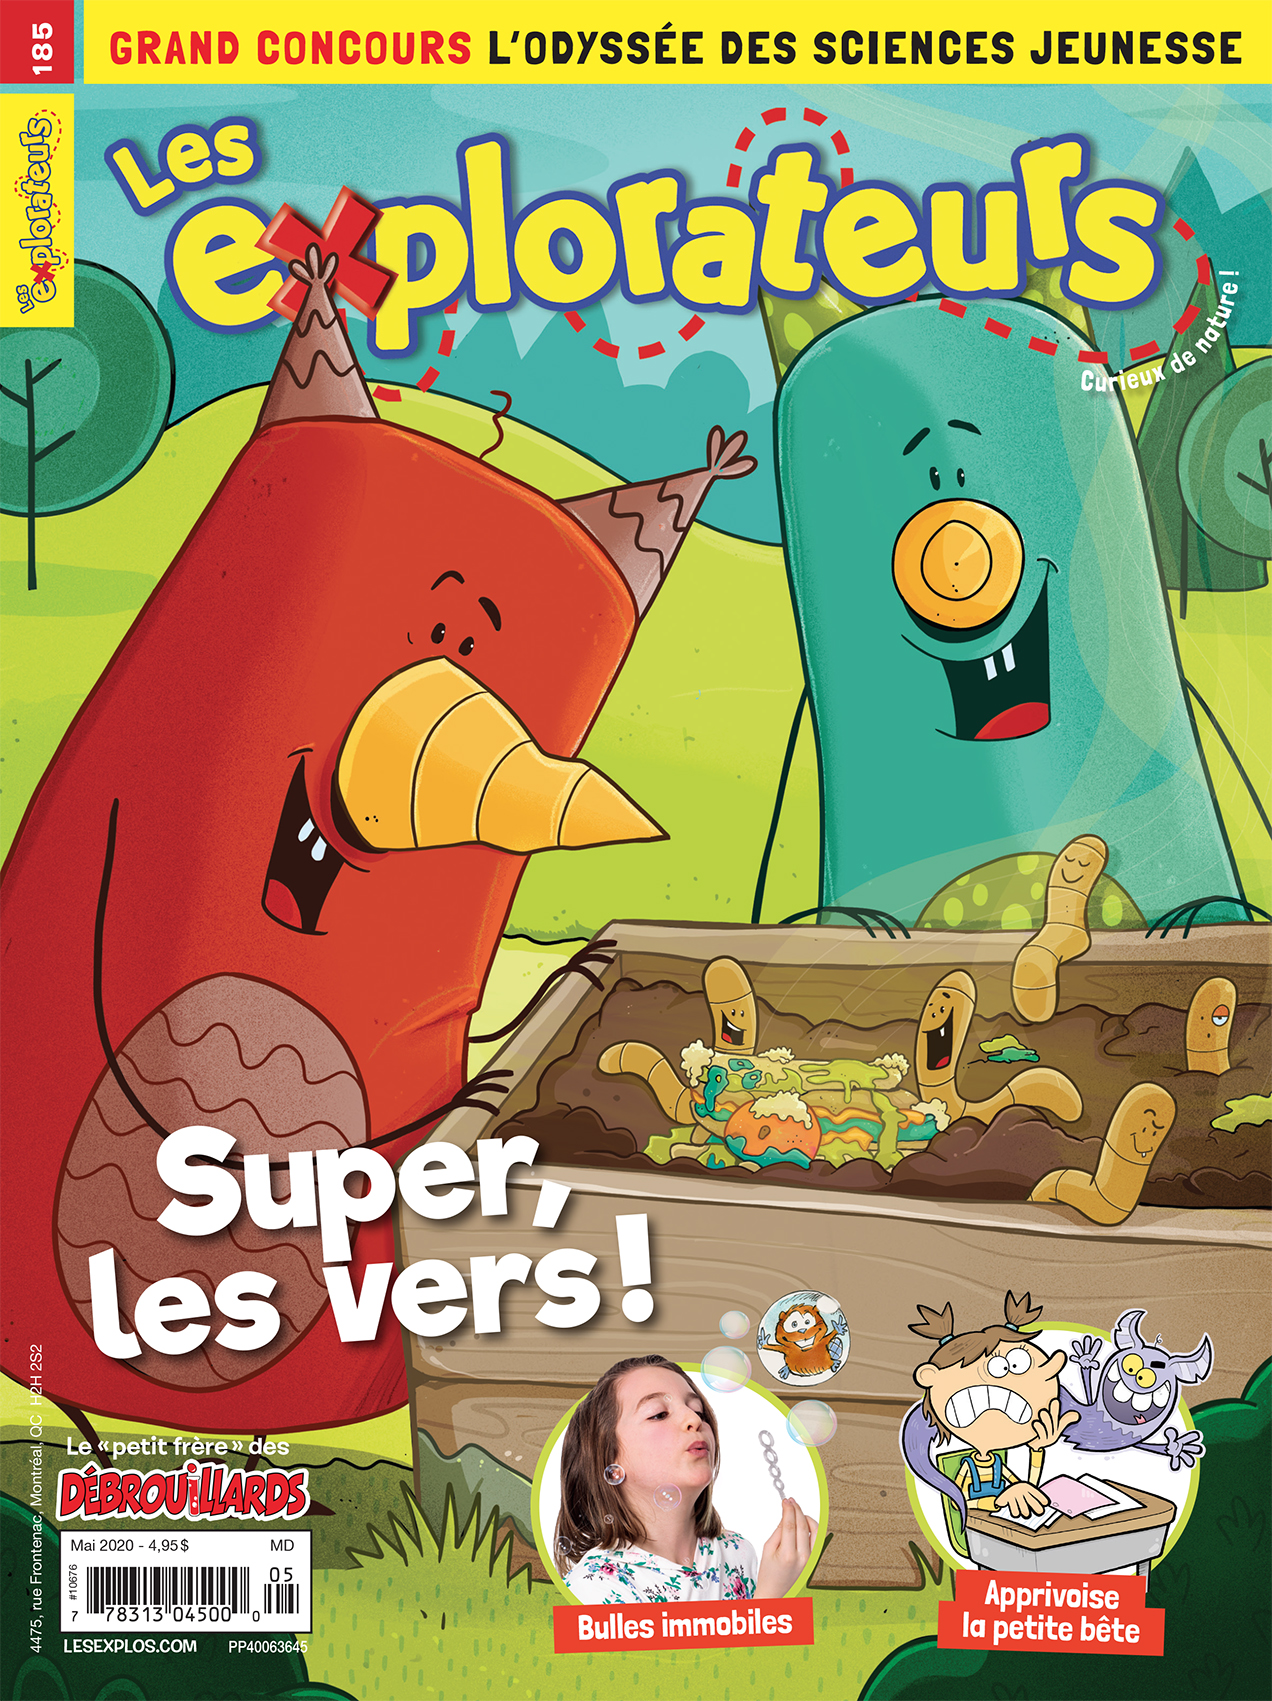 Les Explorateurs, no 185, mai 2020